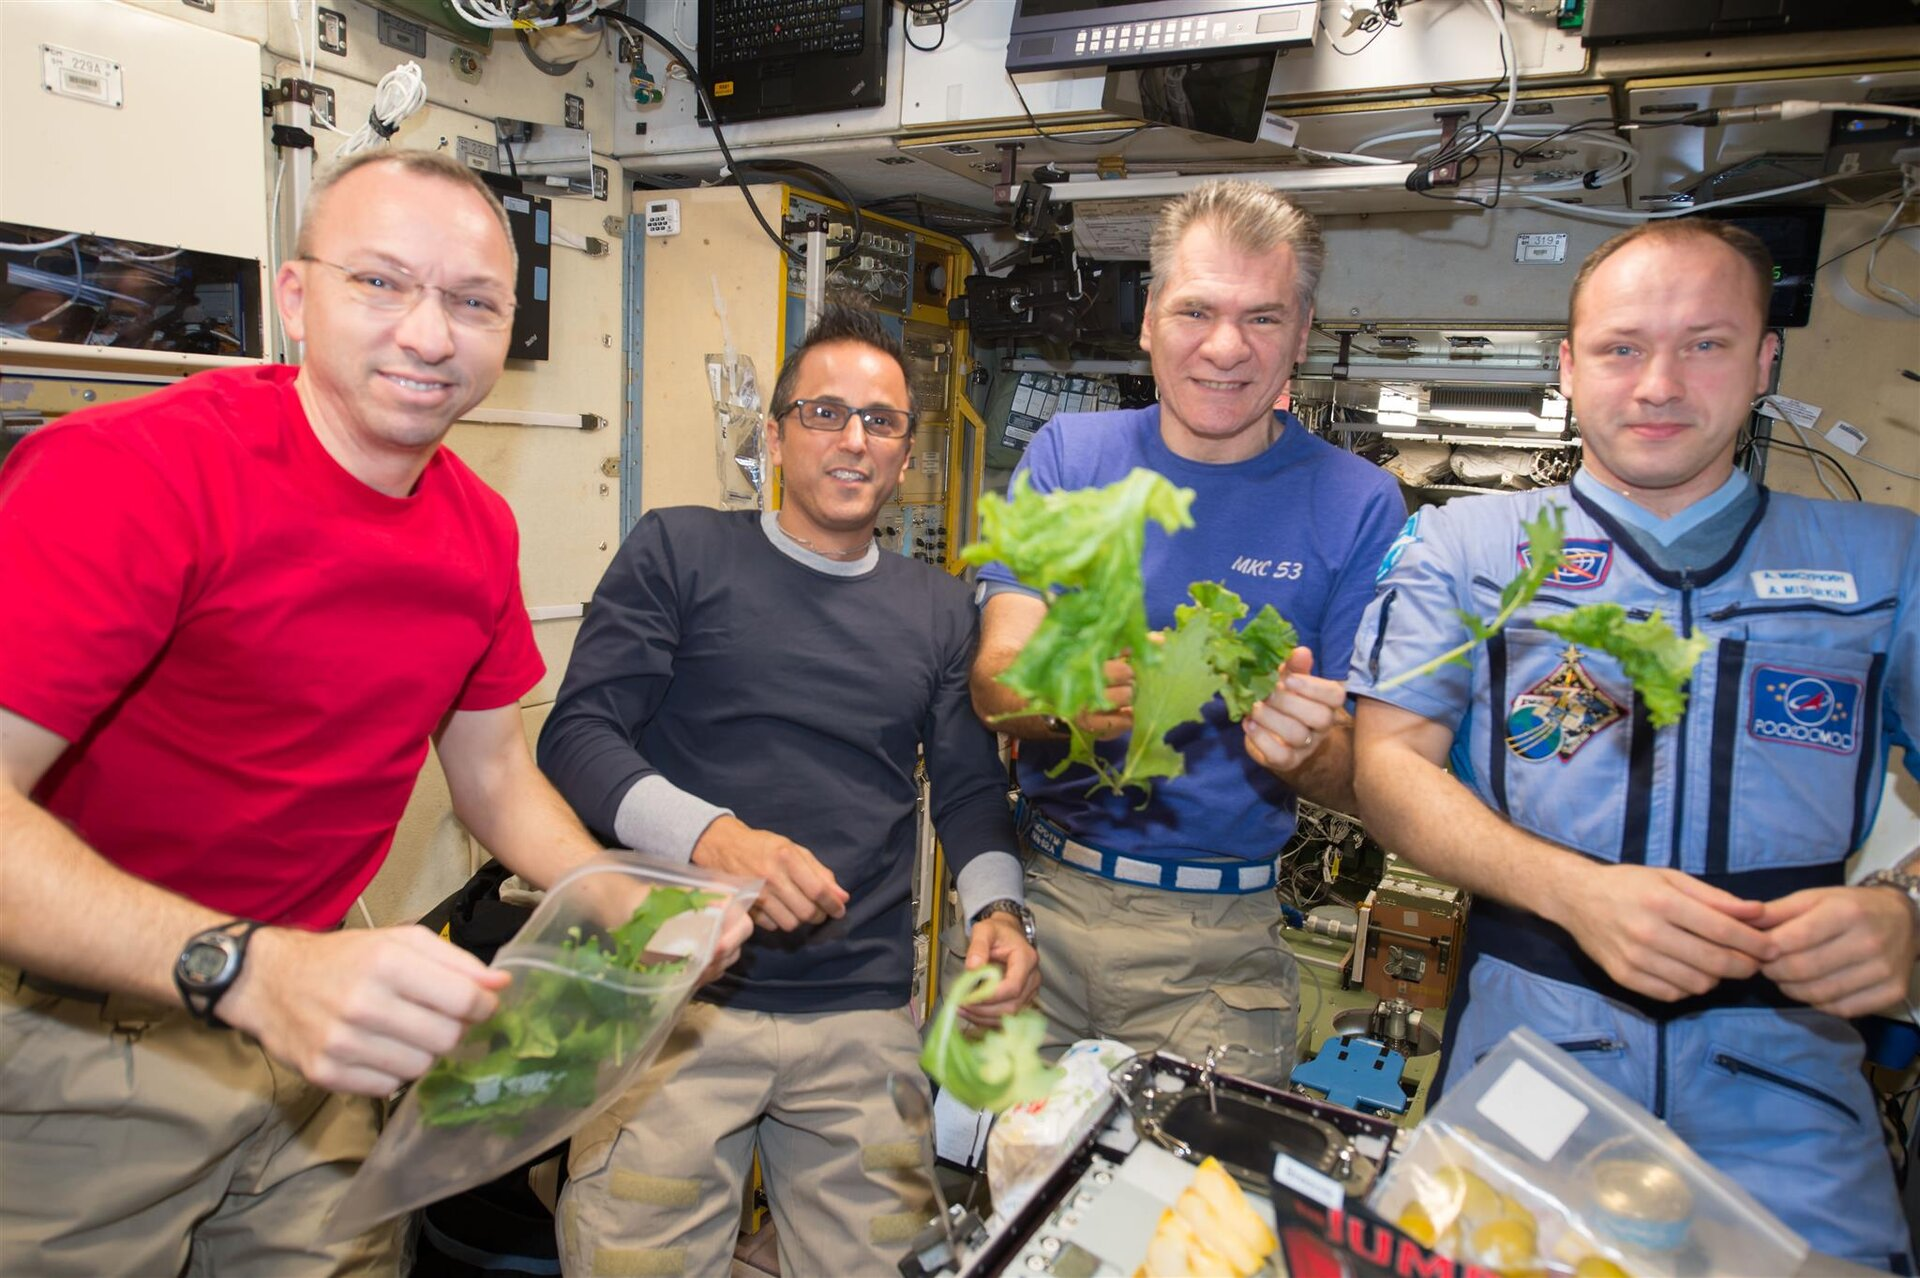 Space lettuce for dinner on the ISS